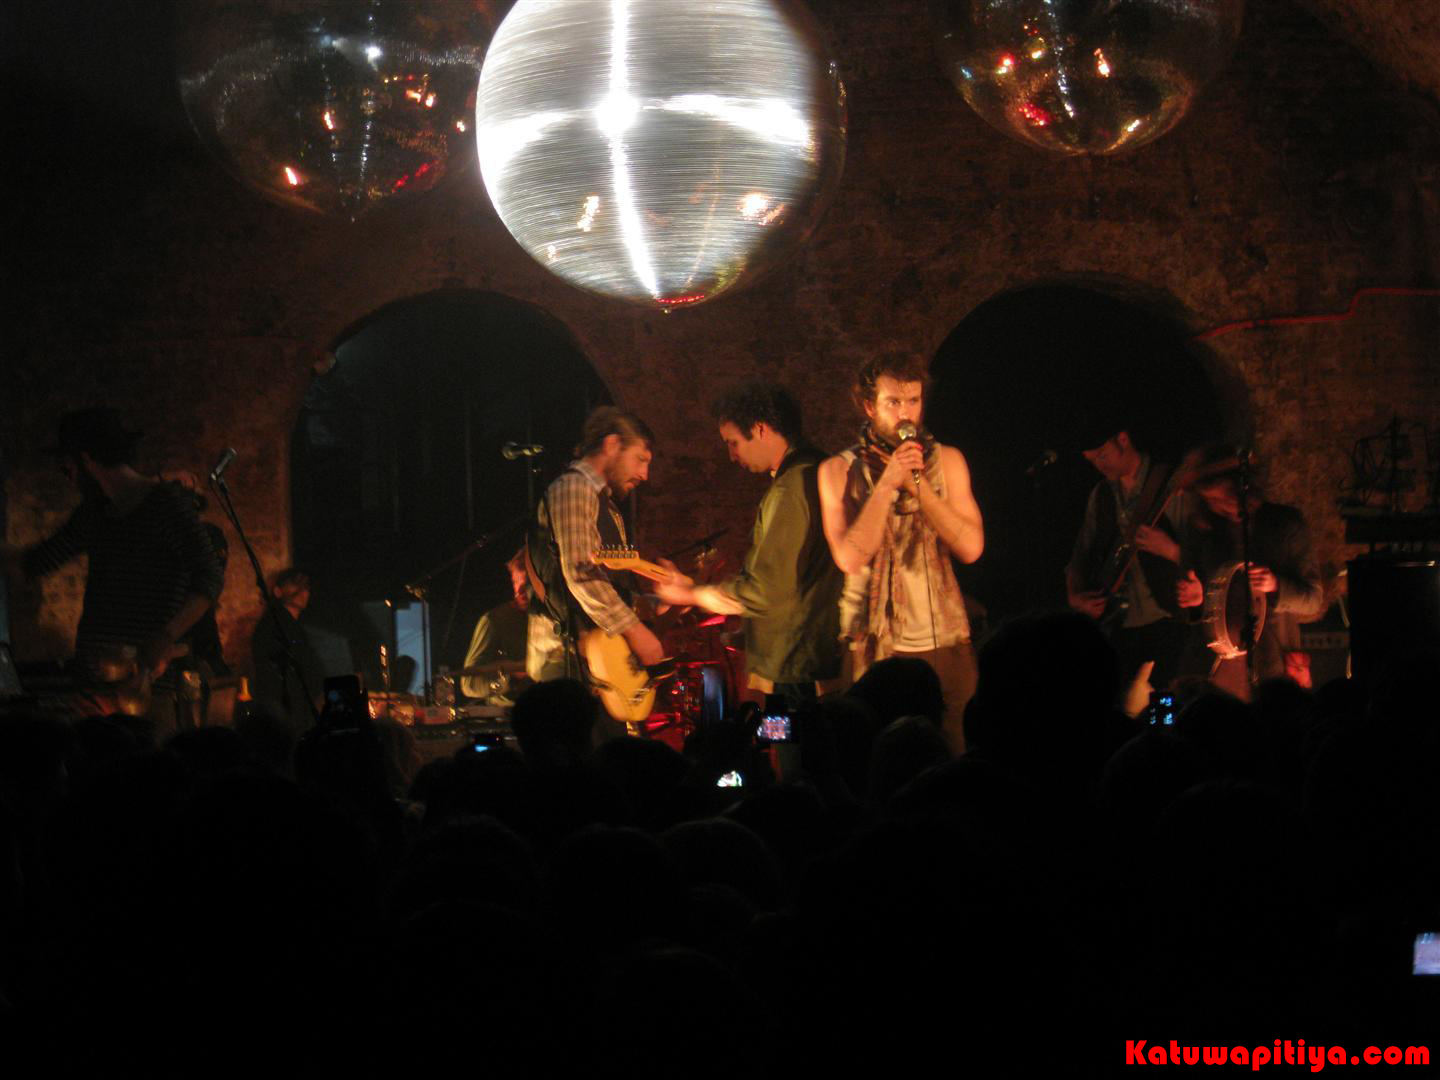 Edward Sharpe and The Magnetic Zeros performing at The Old Vic Tunnels